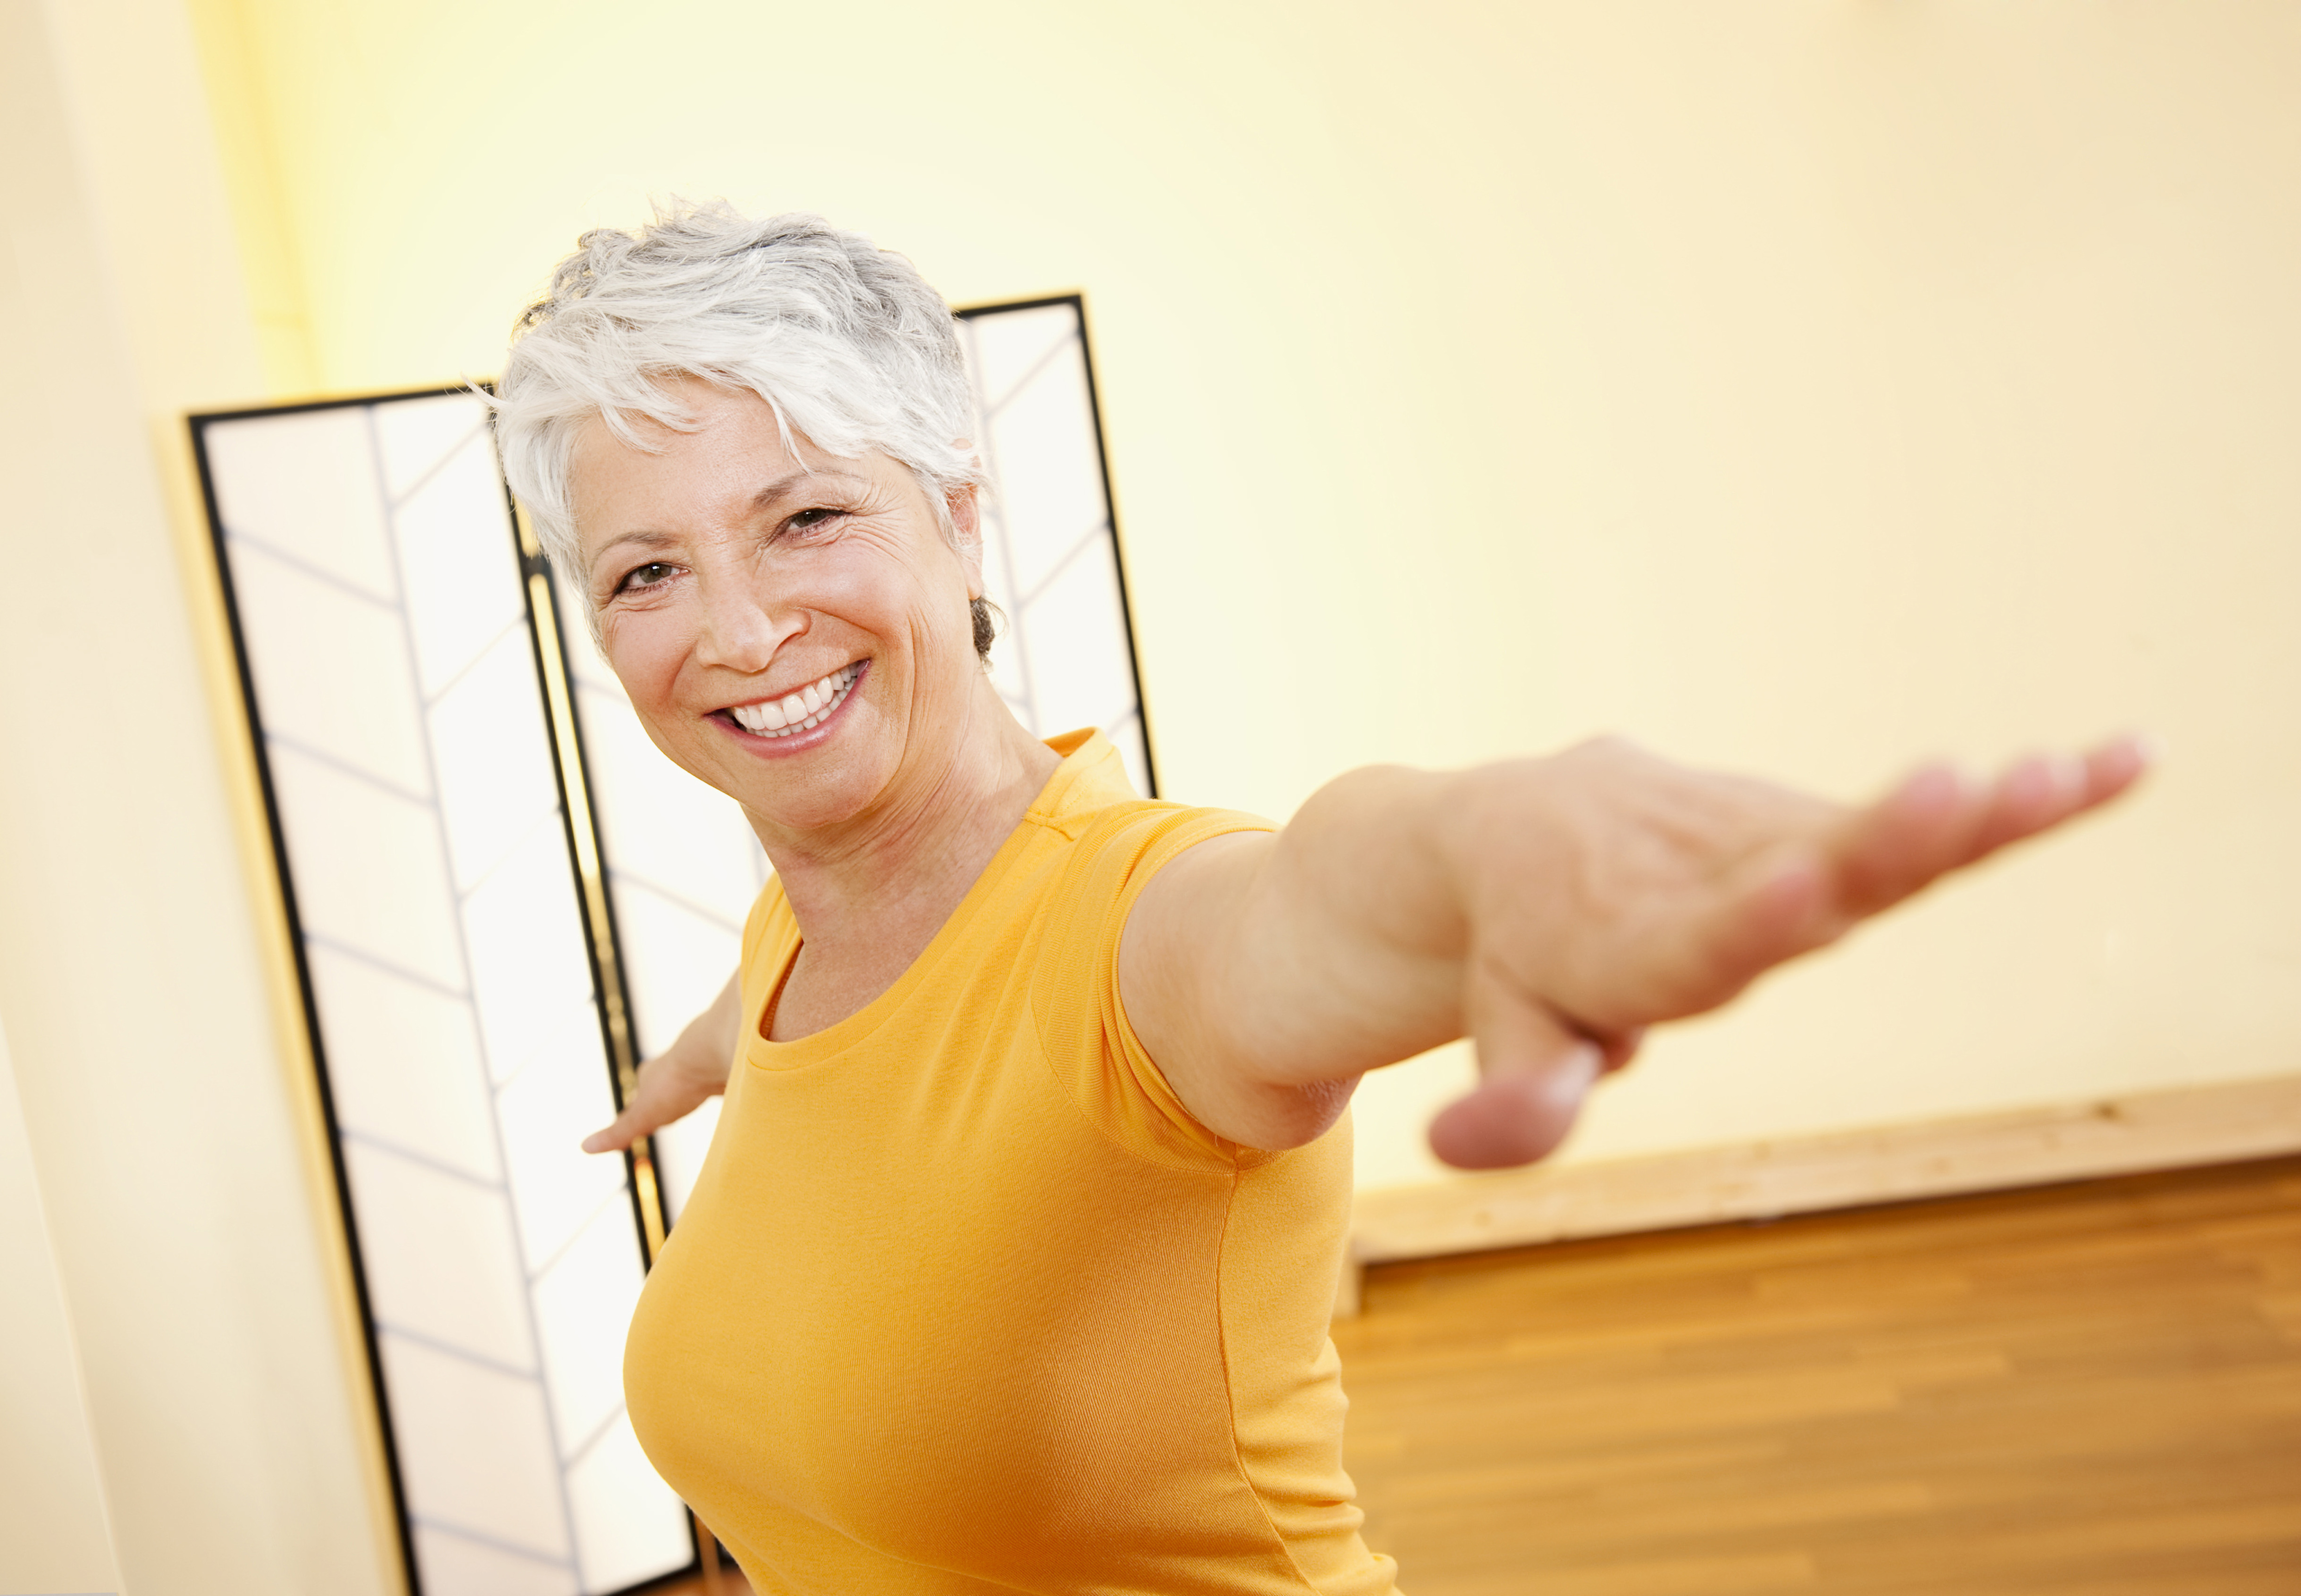 Senior woman with outstretched arms, smiling, portrait